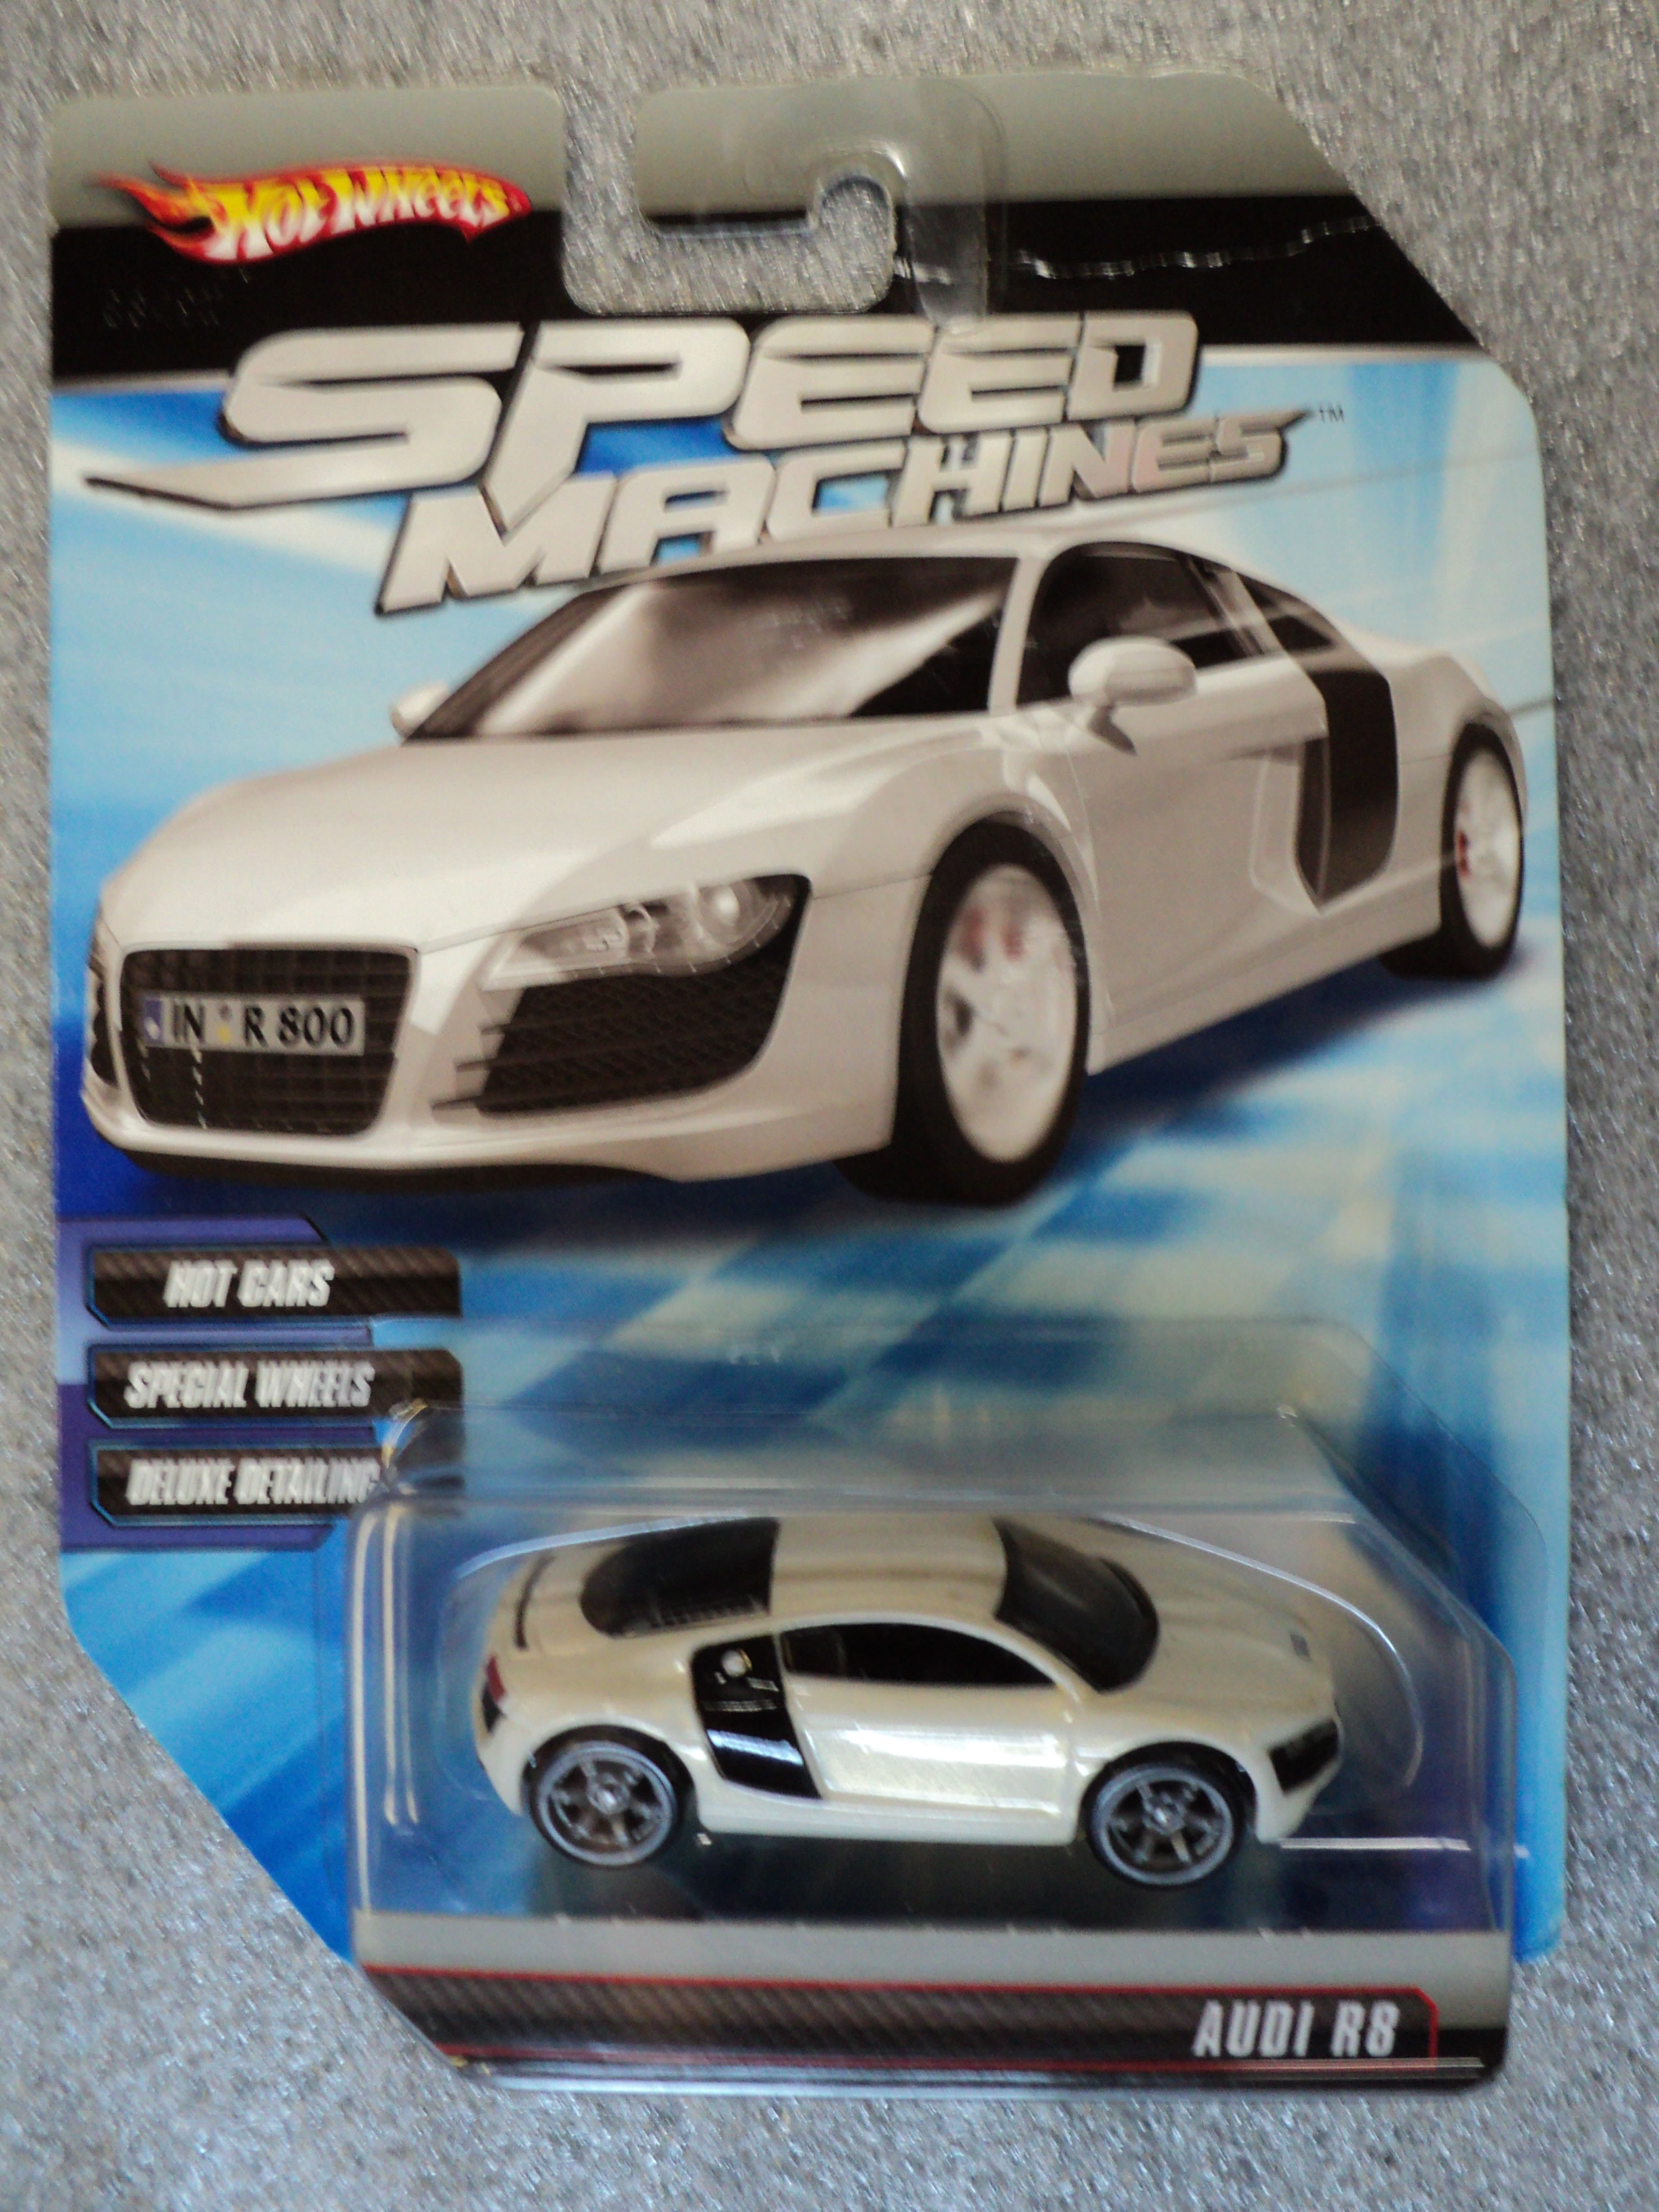 Hot Wheels 2010 Speed Machines Audi R8 Pearl White